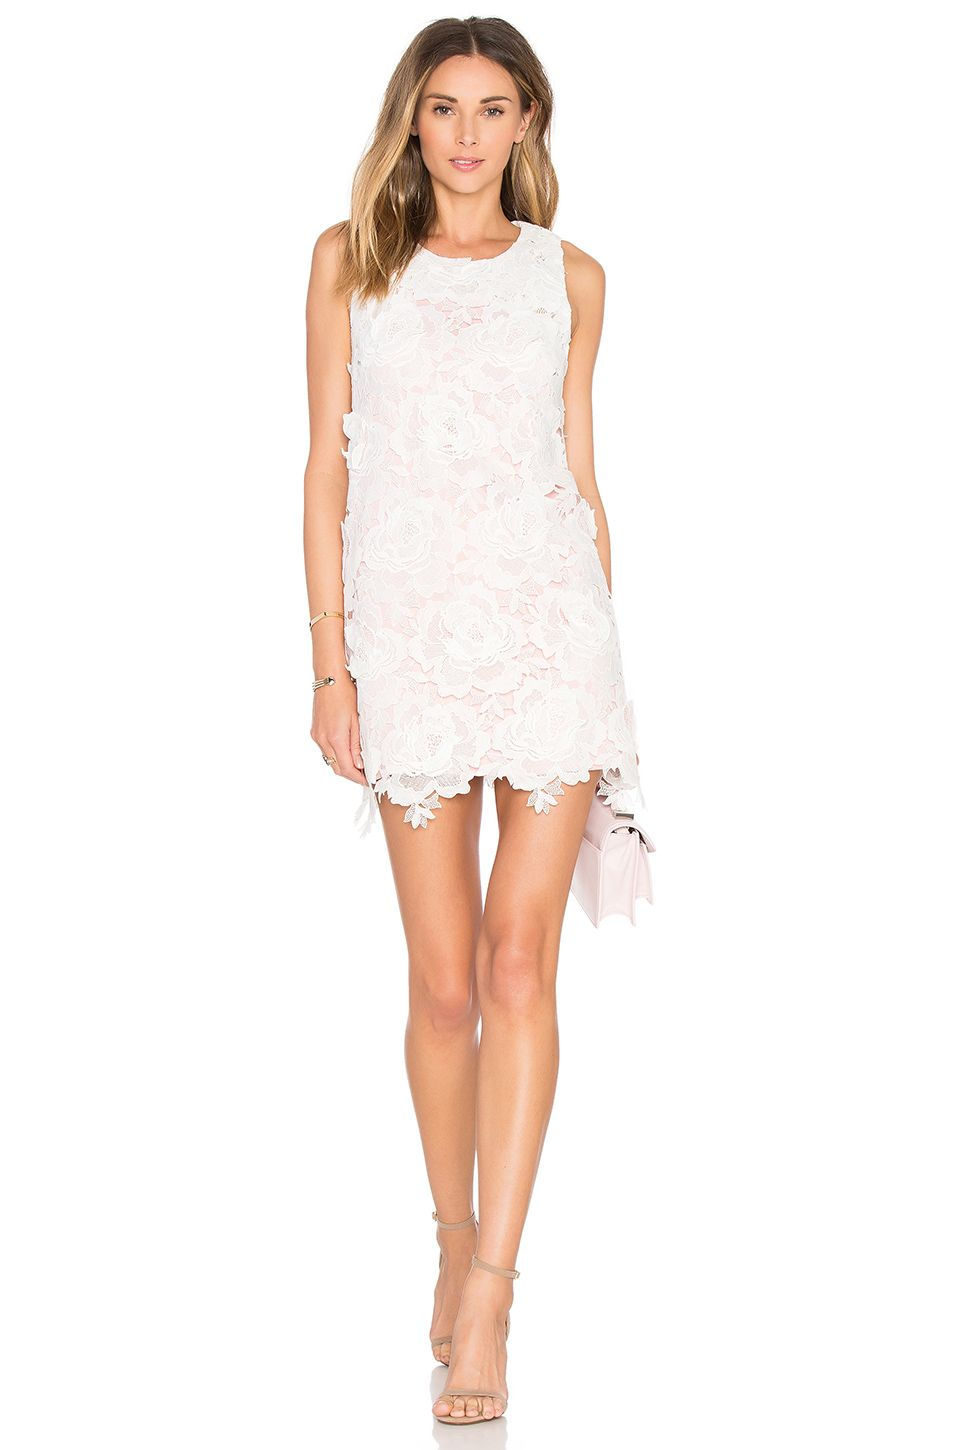 State of Being Roses Only Mini Dress in Blush & White | Bridal ...